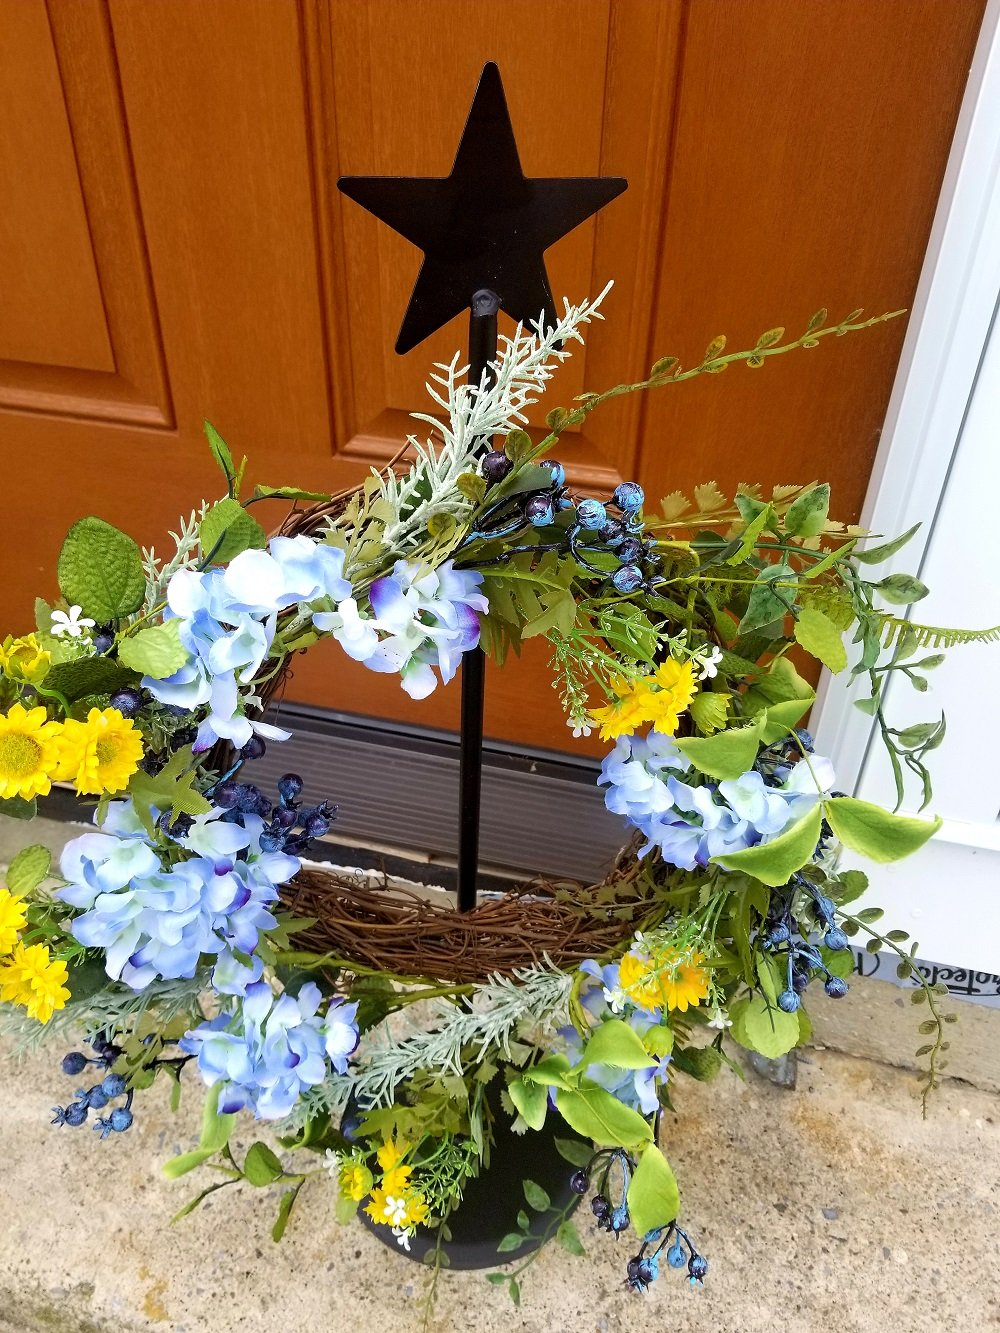 Wrought Iron Standing Wreath Hanger With Star - Hand Made By Amish Of Lancaster County PA. - Wreath Not Included by Hand Crafted & American Made! (Image #1)